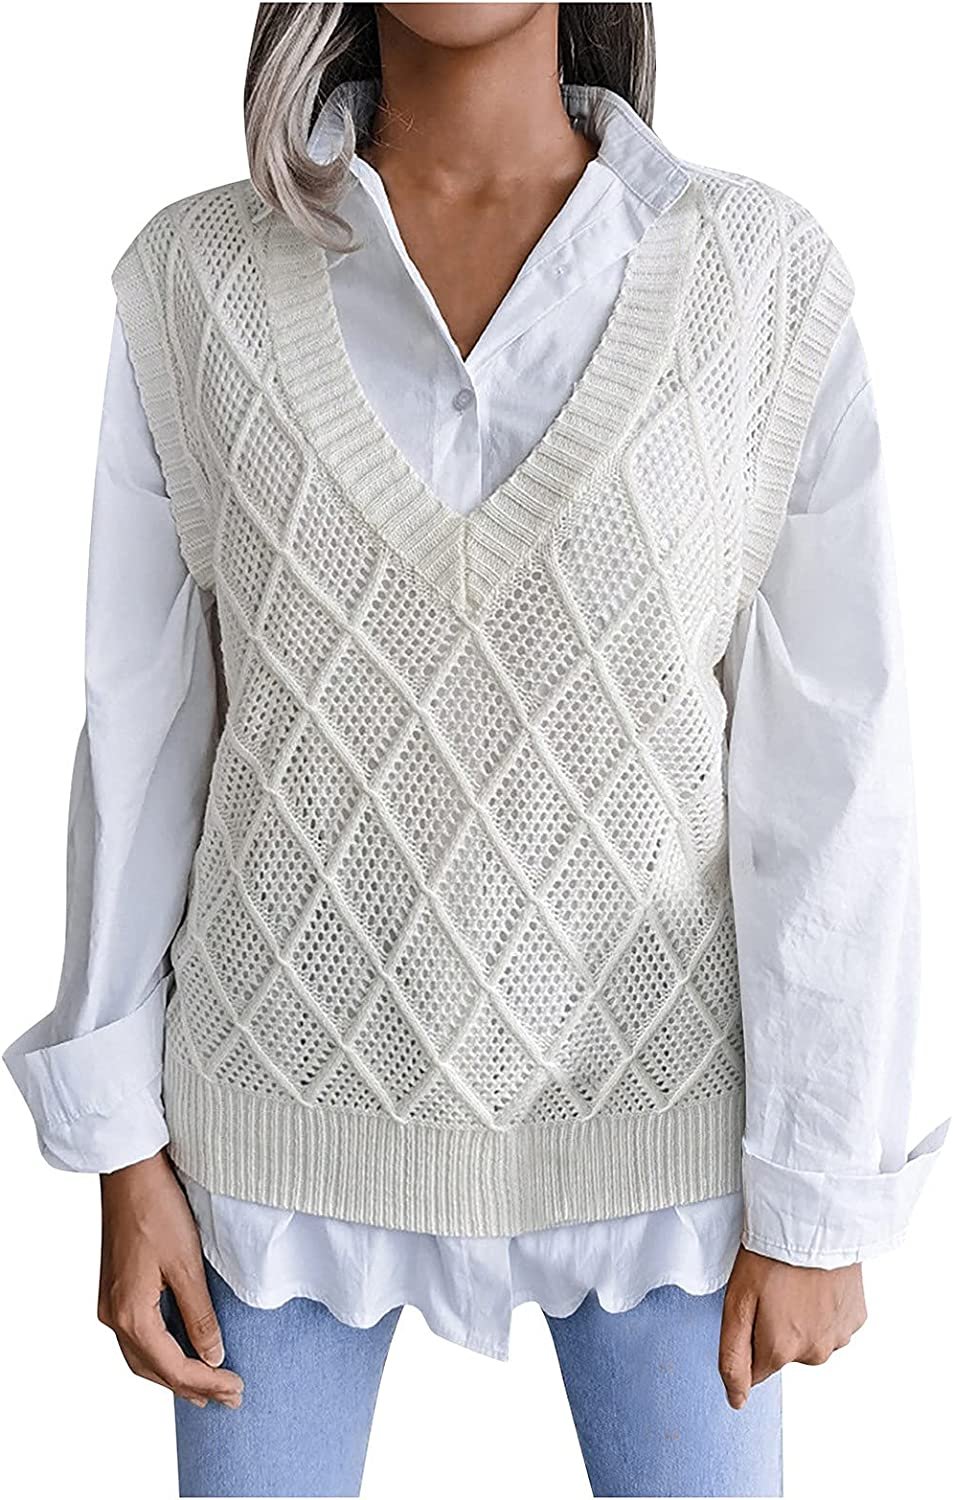 NAMTYQX Argyle Sweater Vest Women V Neck Hollow Sleeveless Casual Pullover Knitted Sweaters